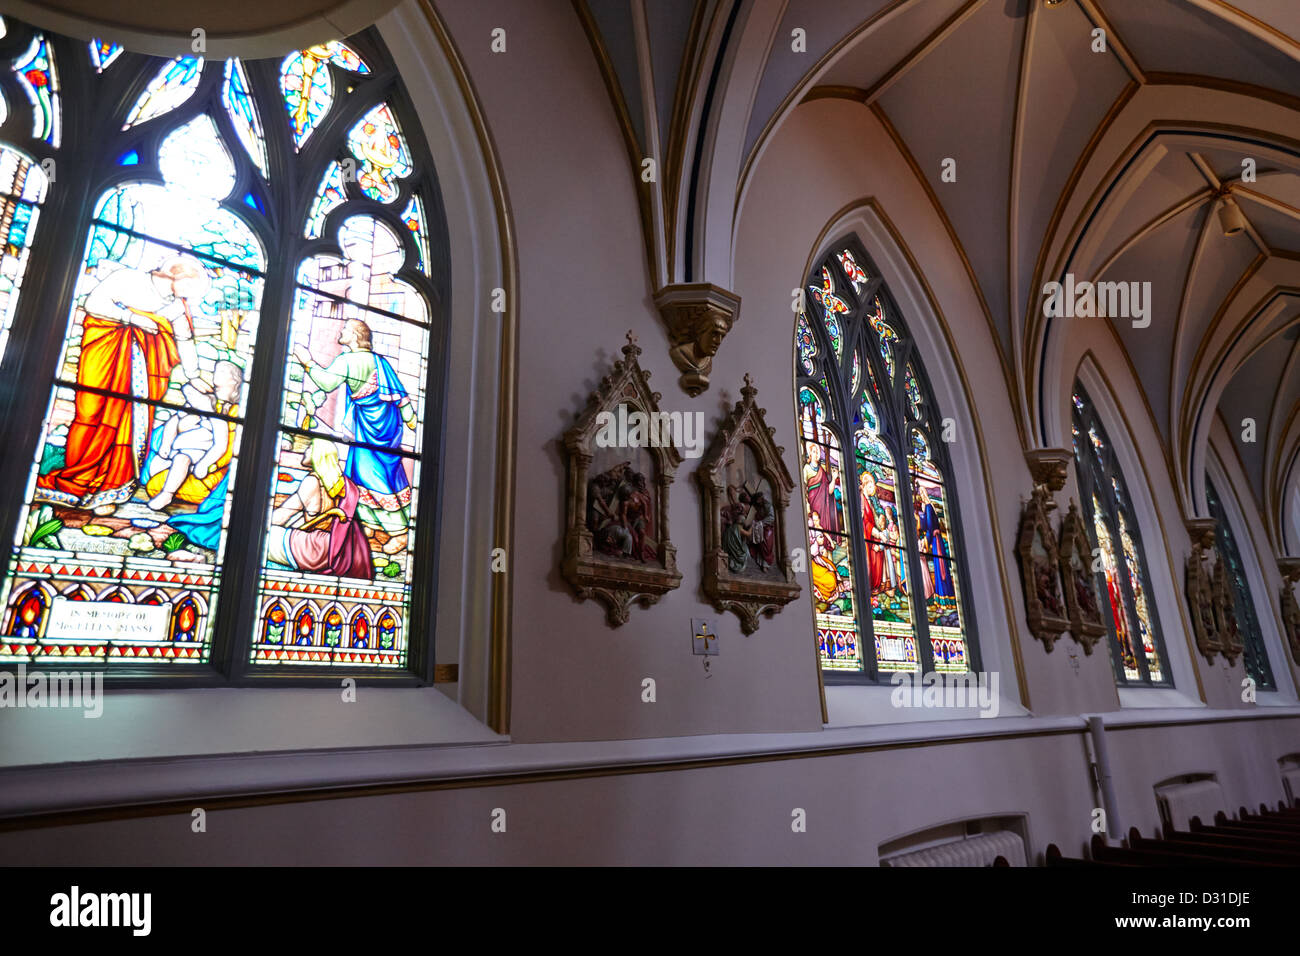 stained glass windows and stations of the cross interior of holy rosary cathedral Vancouver BC Canada - Stock Image